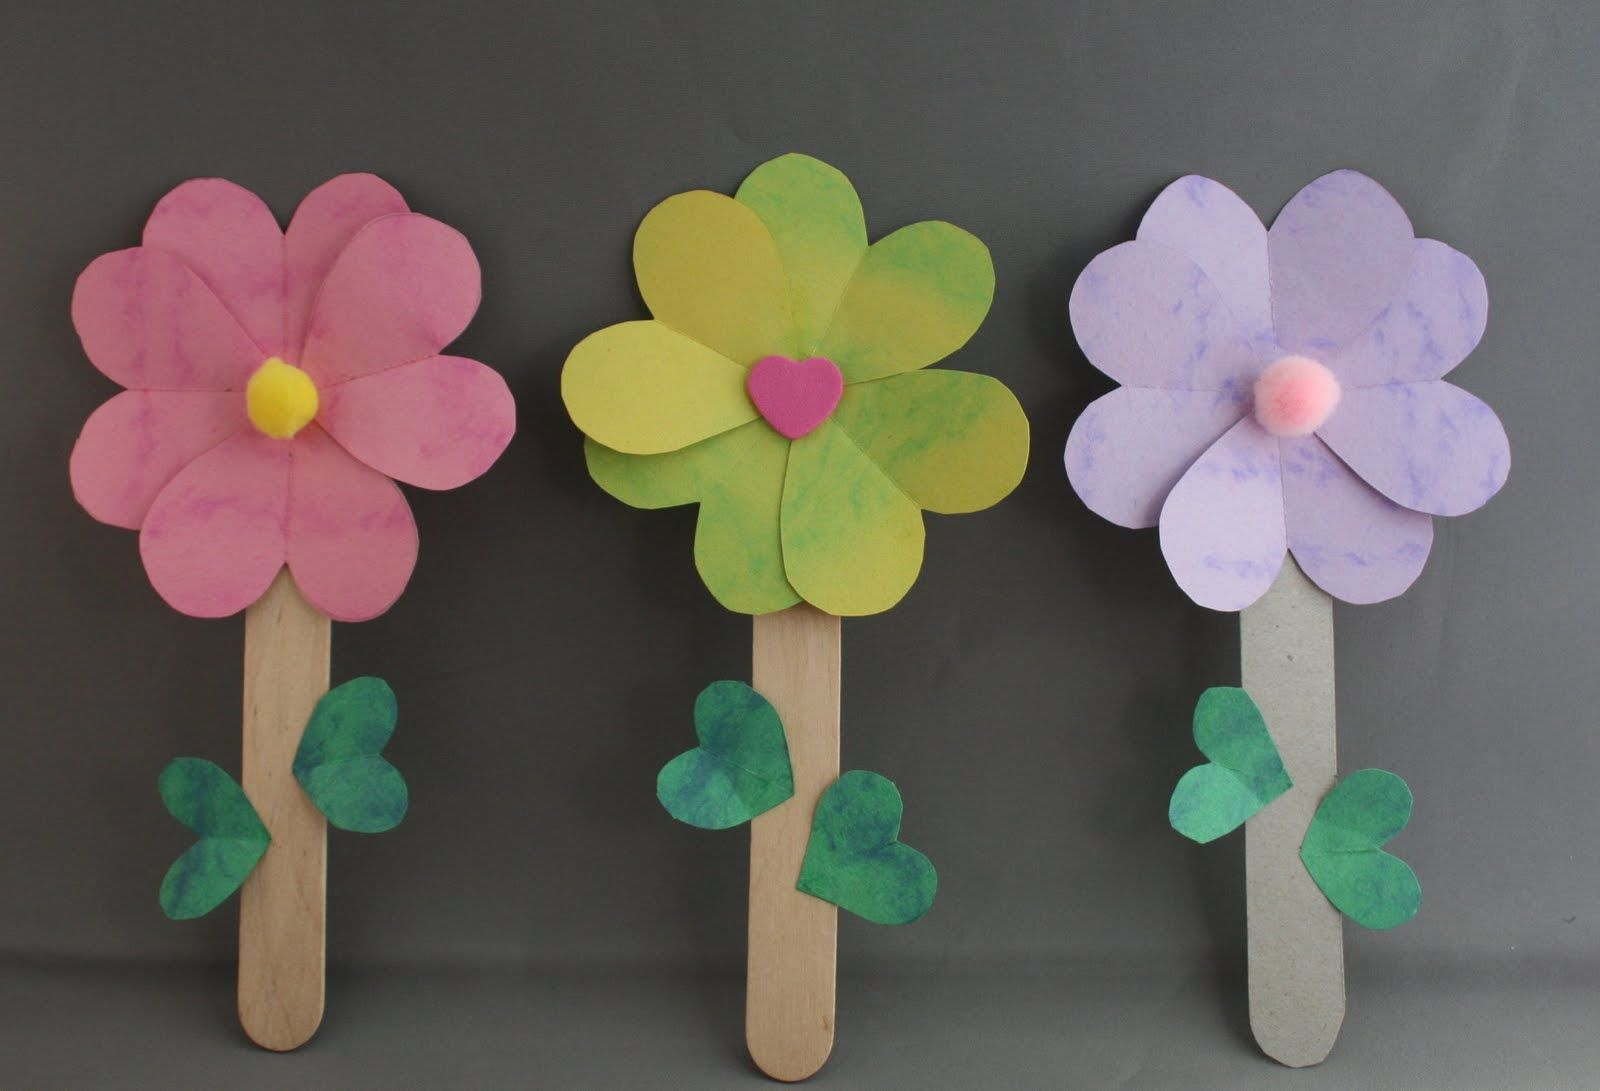 flower craft the idea for this post started with a